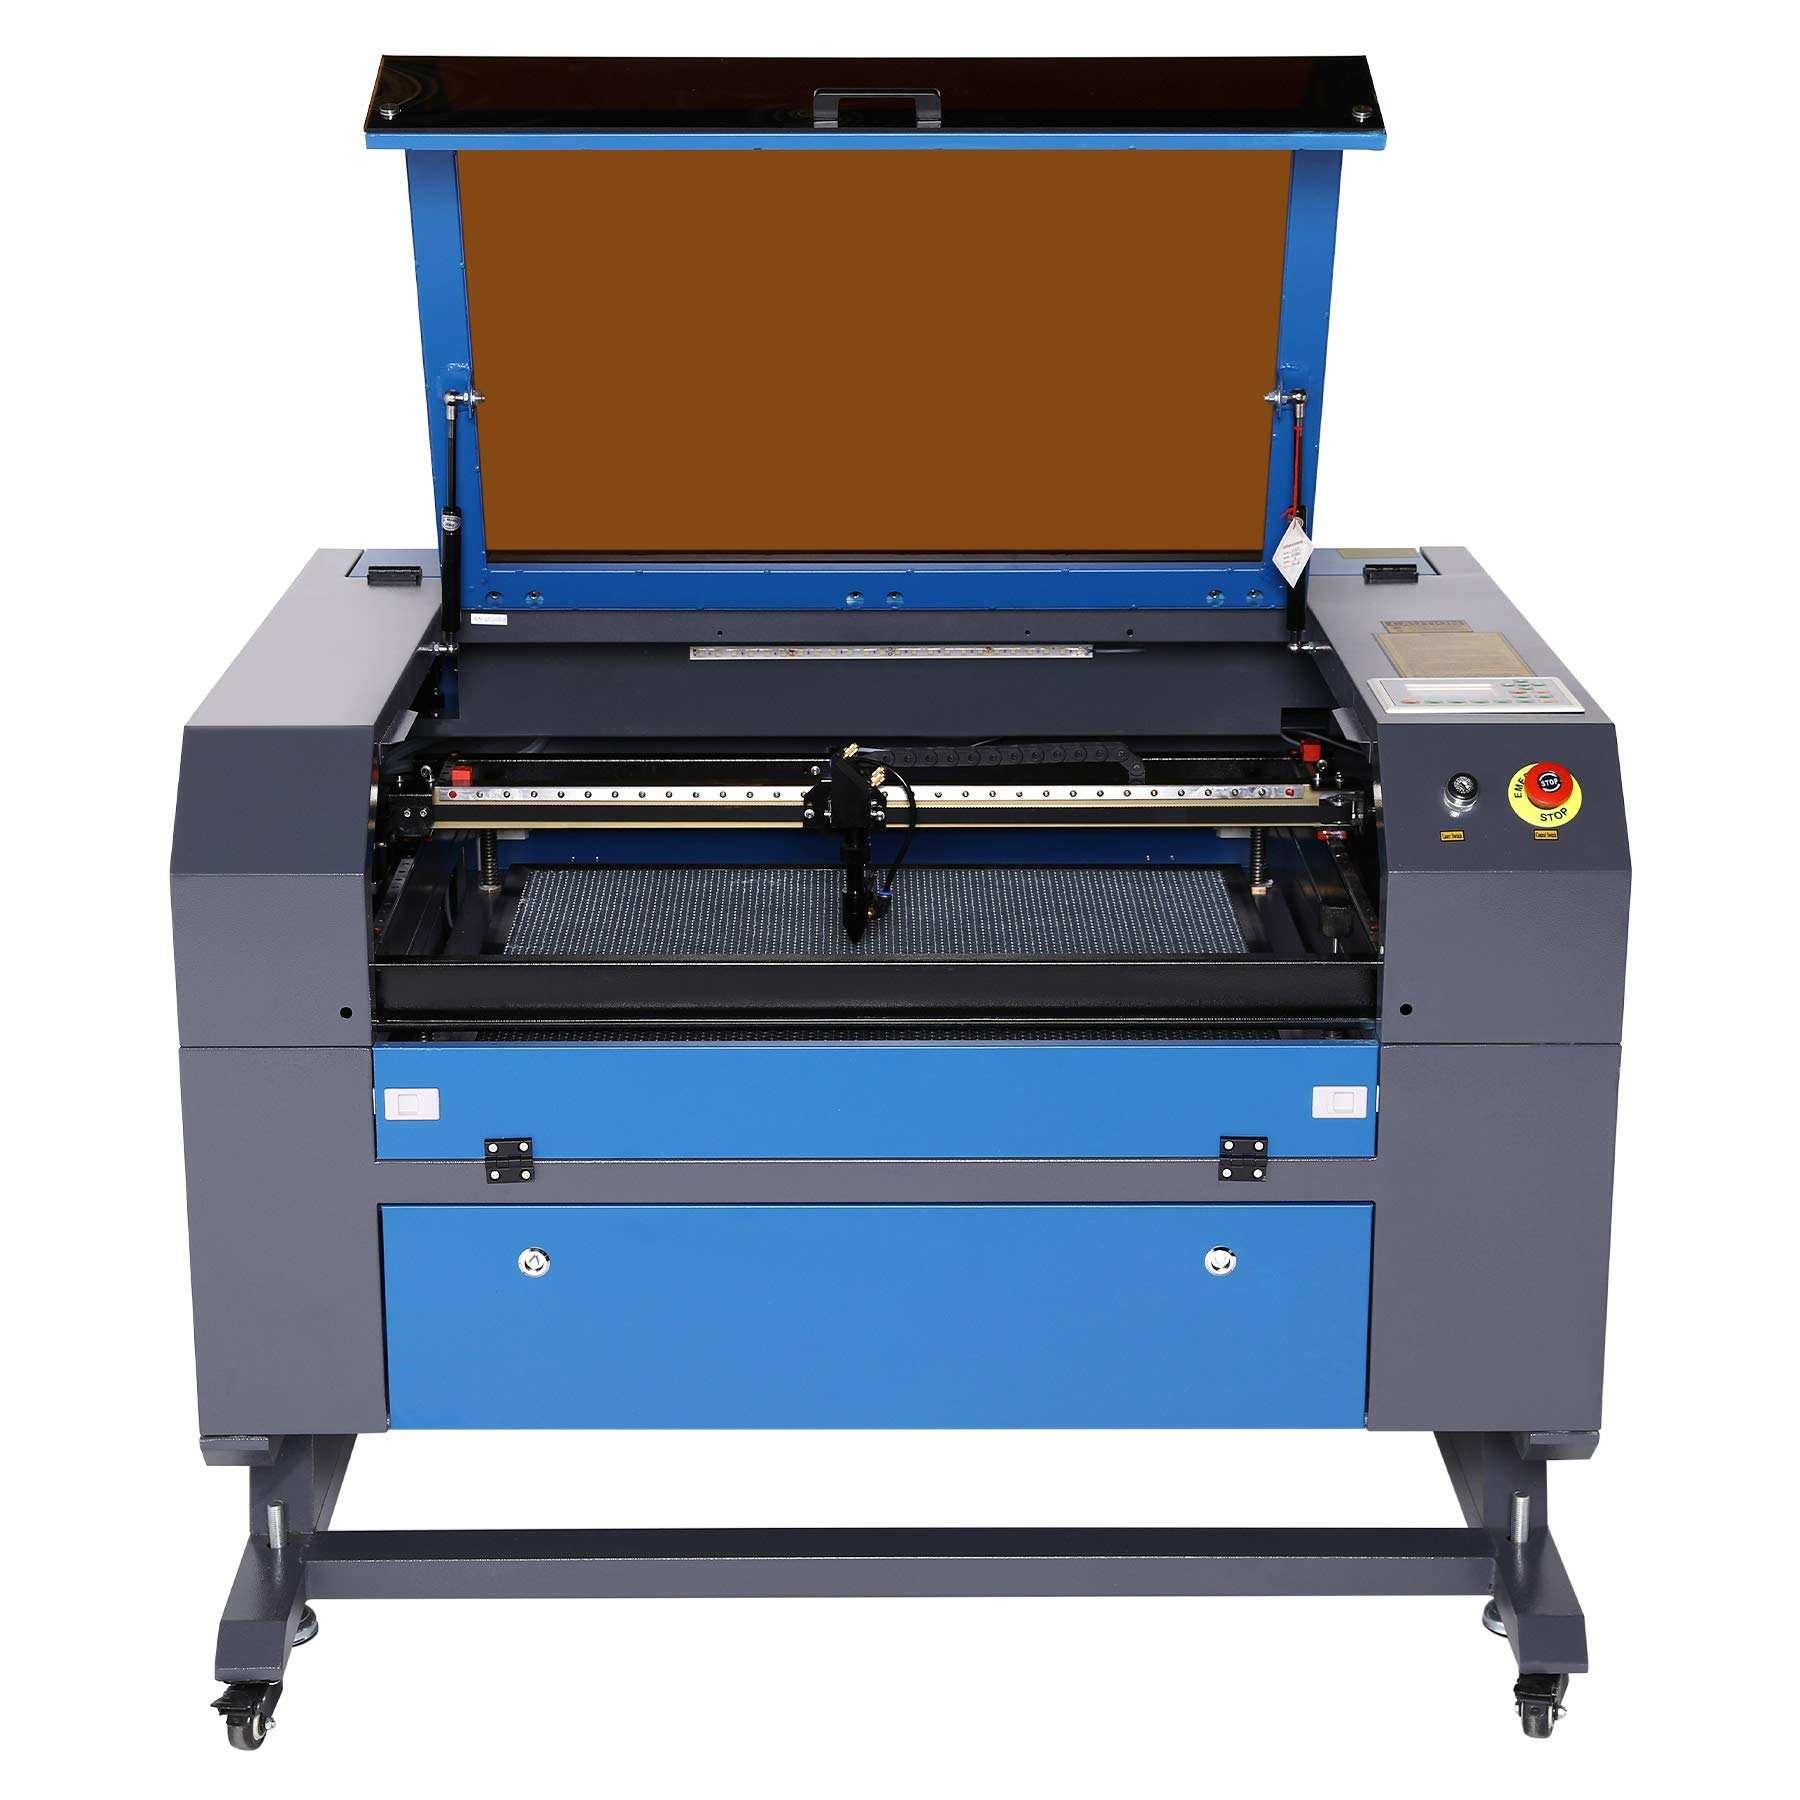 OMTech 60W CO2 Laser Engraver Cutter with 20 x 28in Work Area, Laser Engraving Machine with USB Port, Ruida Digital Control with Real-Time Data, Red Dot Pointer, for Wood Acrylic Glass